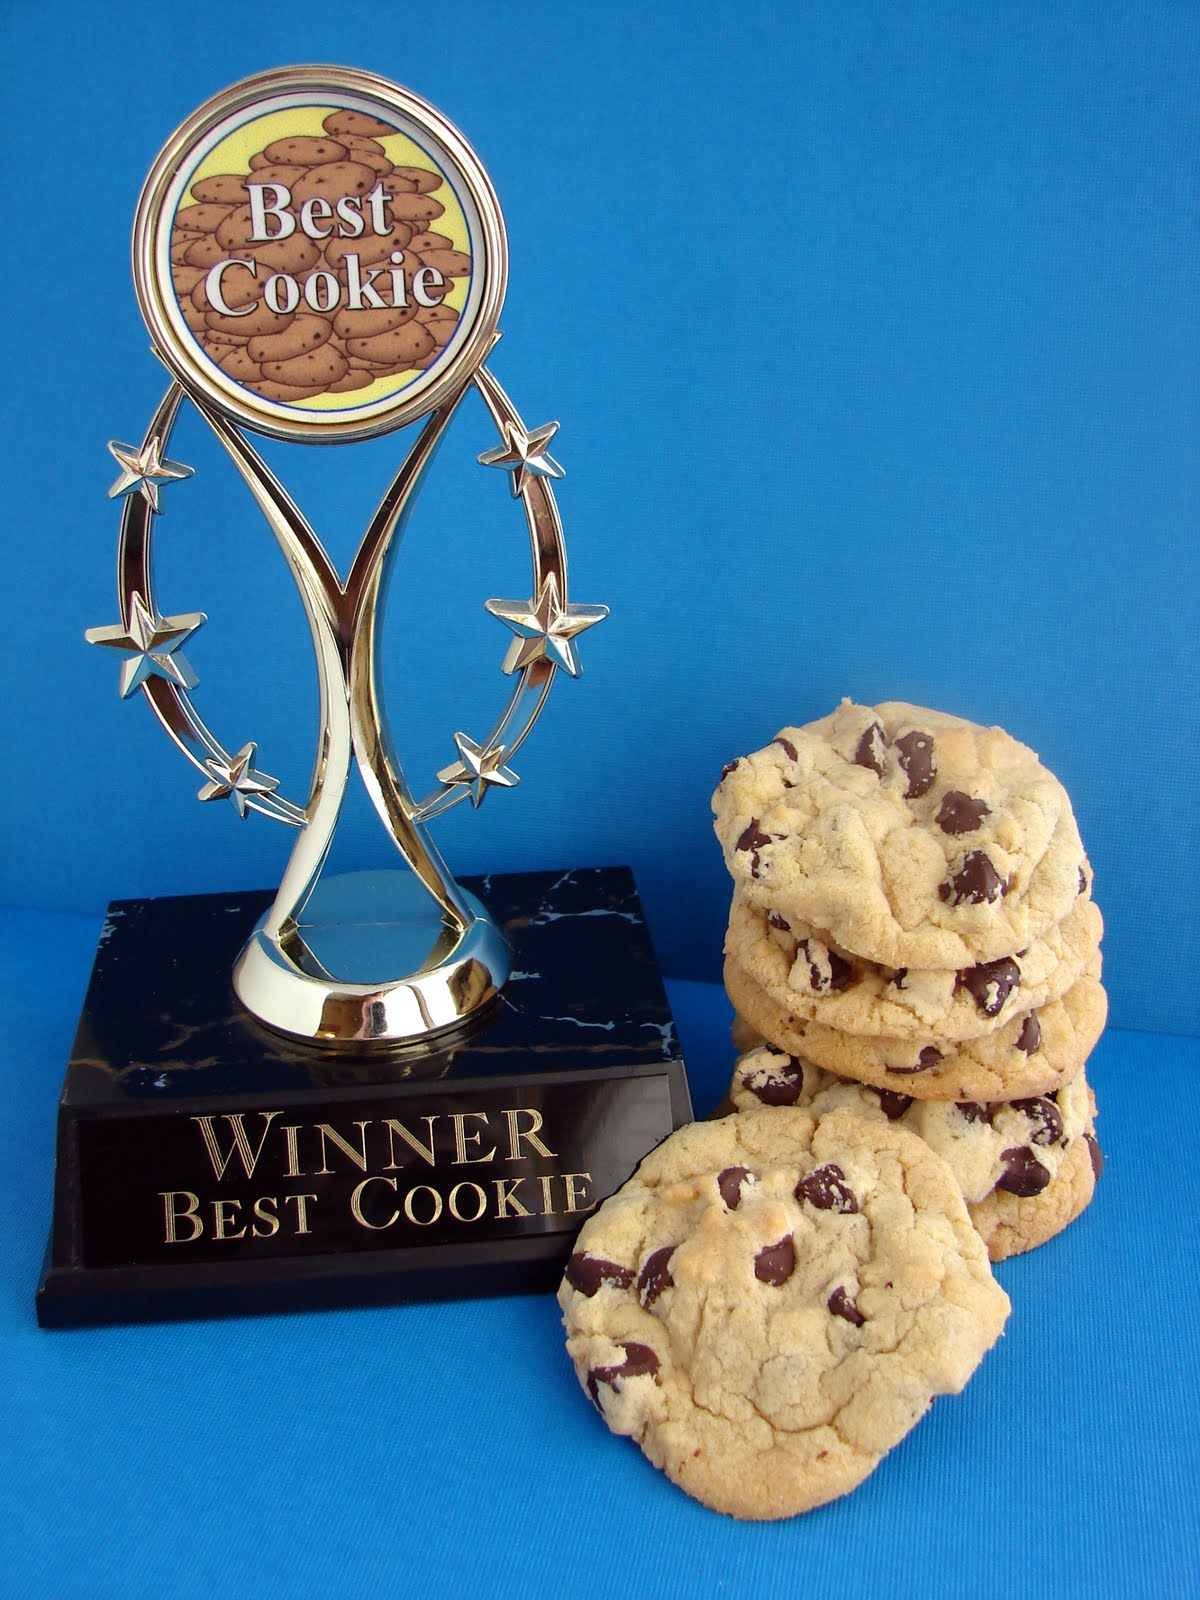 Award-Winning Cookies and Awards